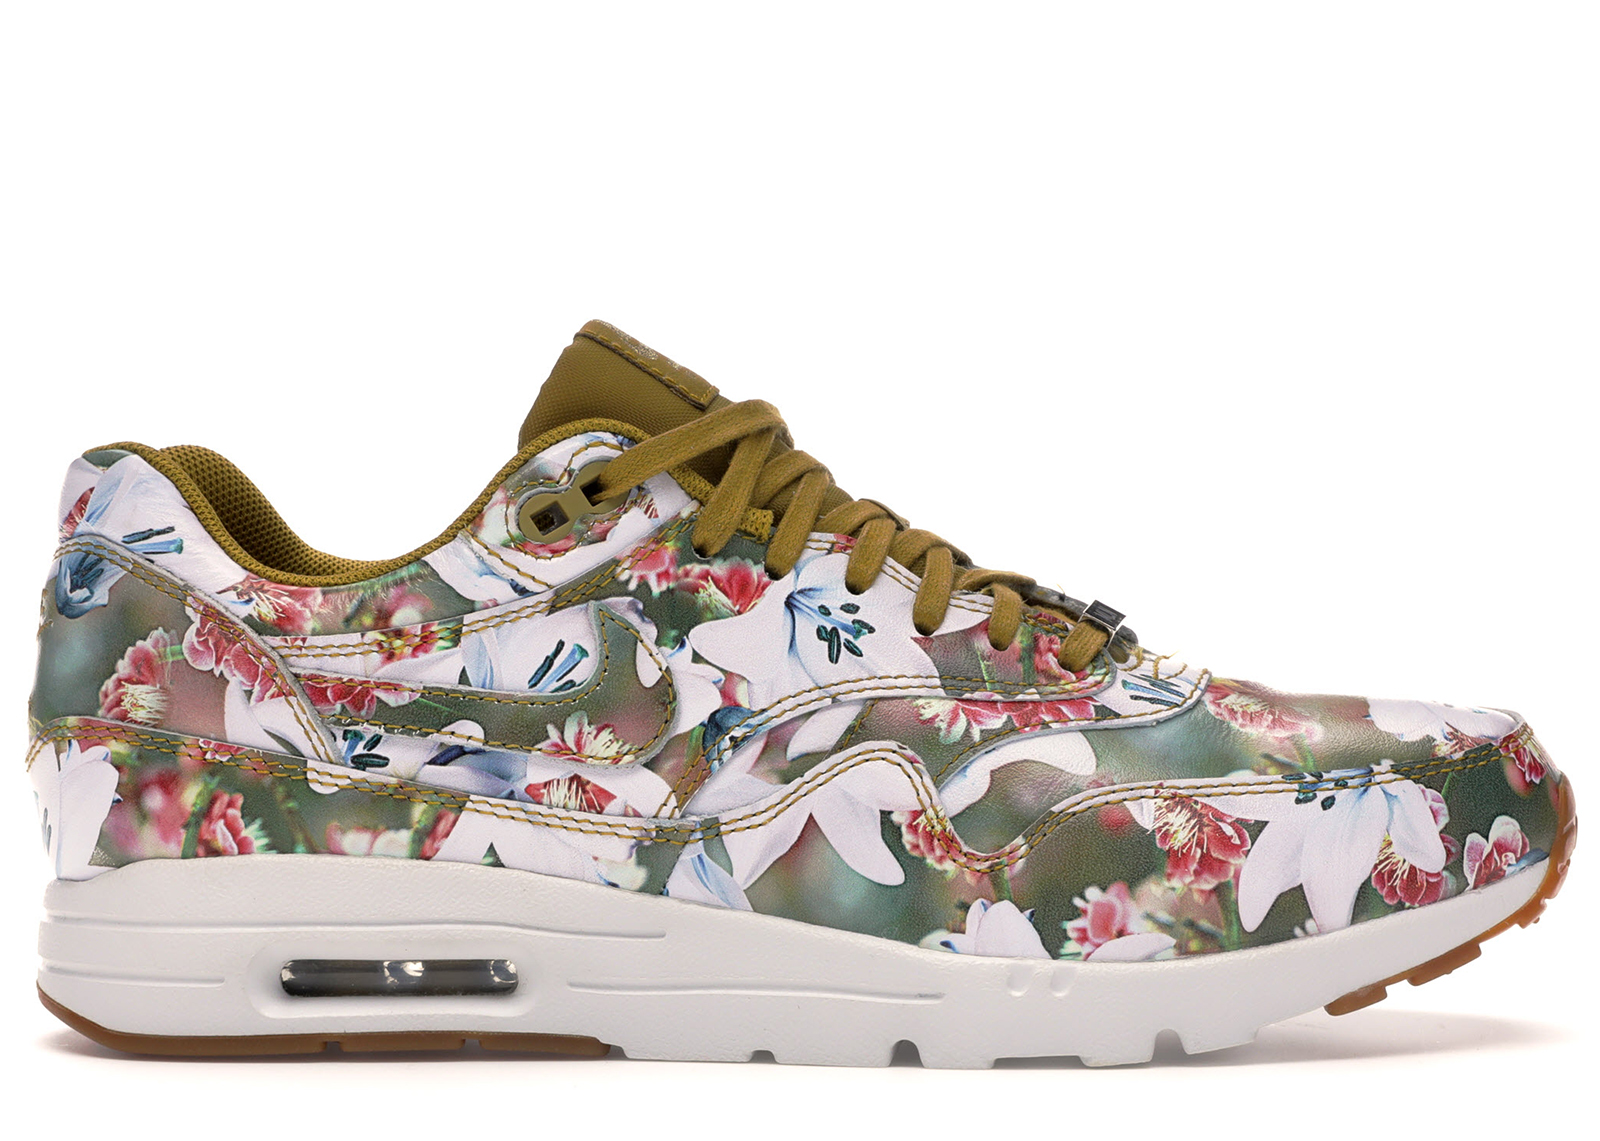 Nike Air Max 1 Milan City Collection (W)